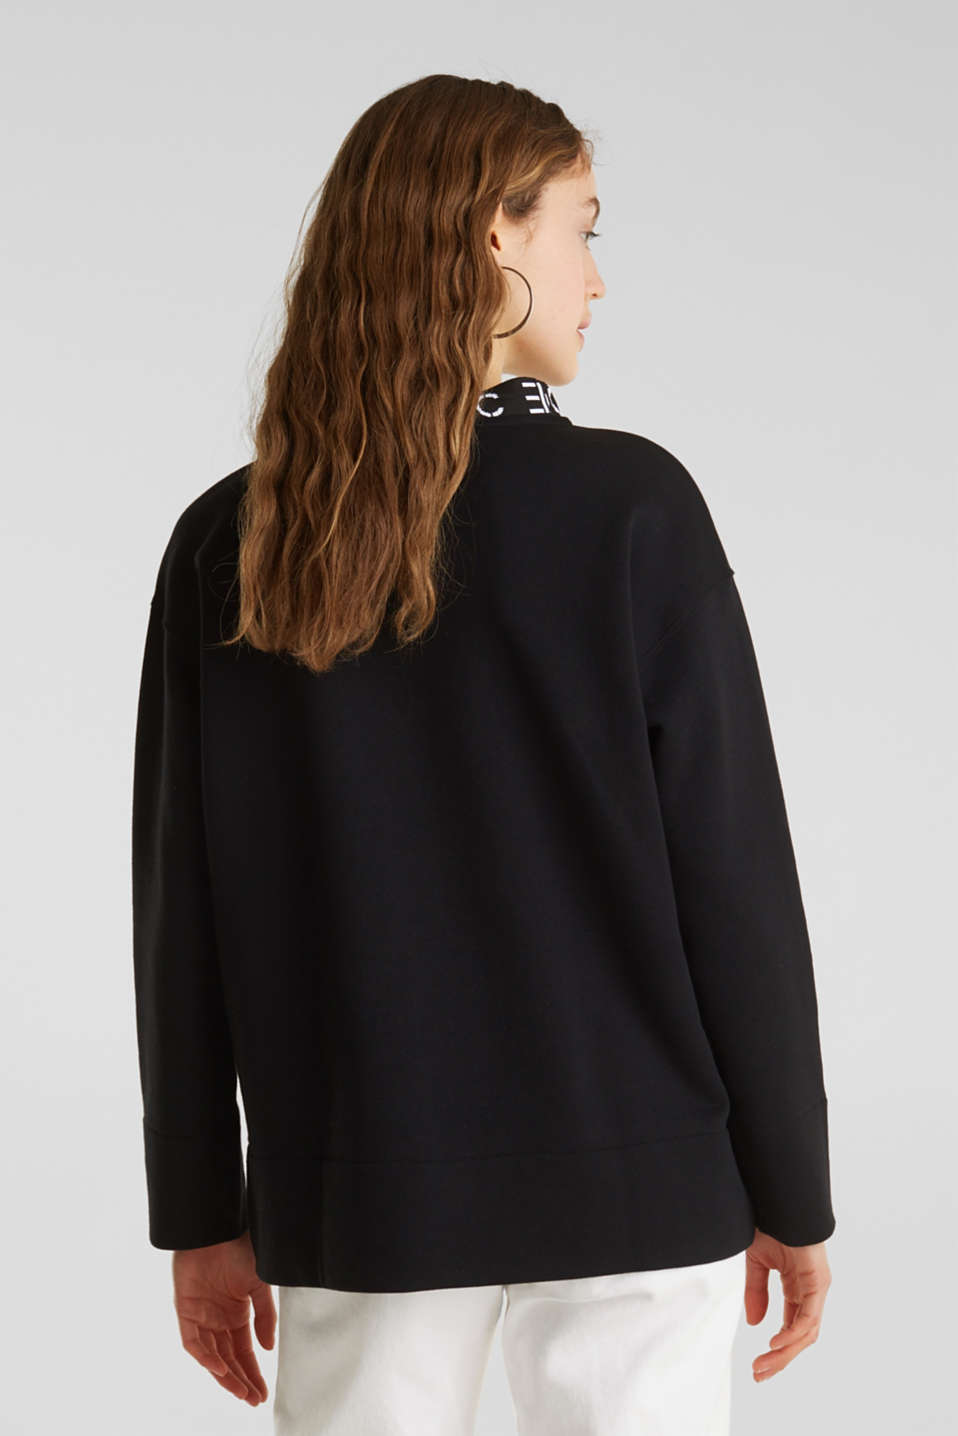 Sweatshirt with a logo on the cuffs, BLACK, detail image number 3